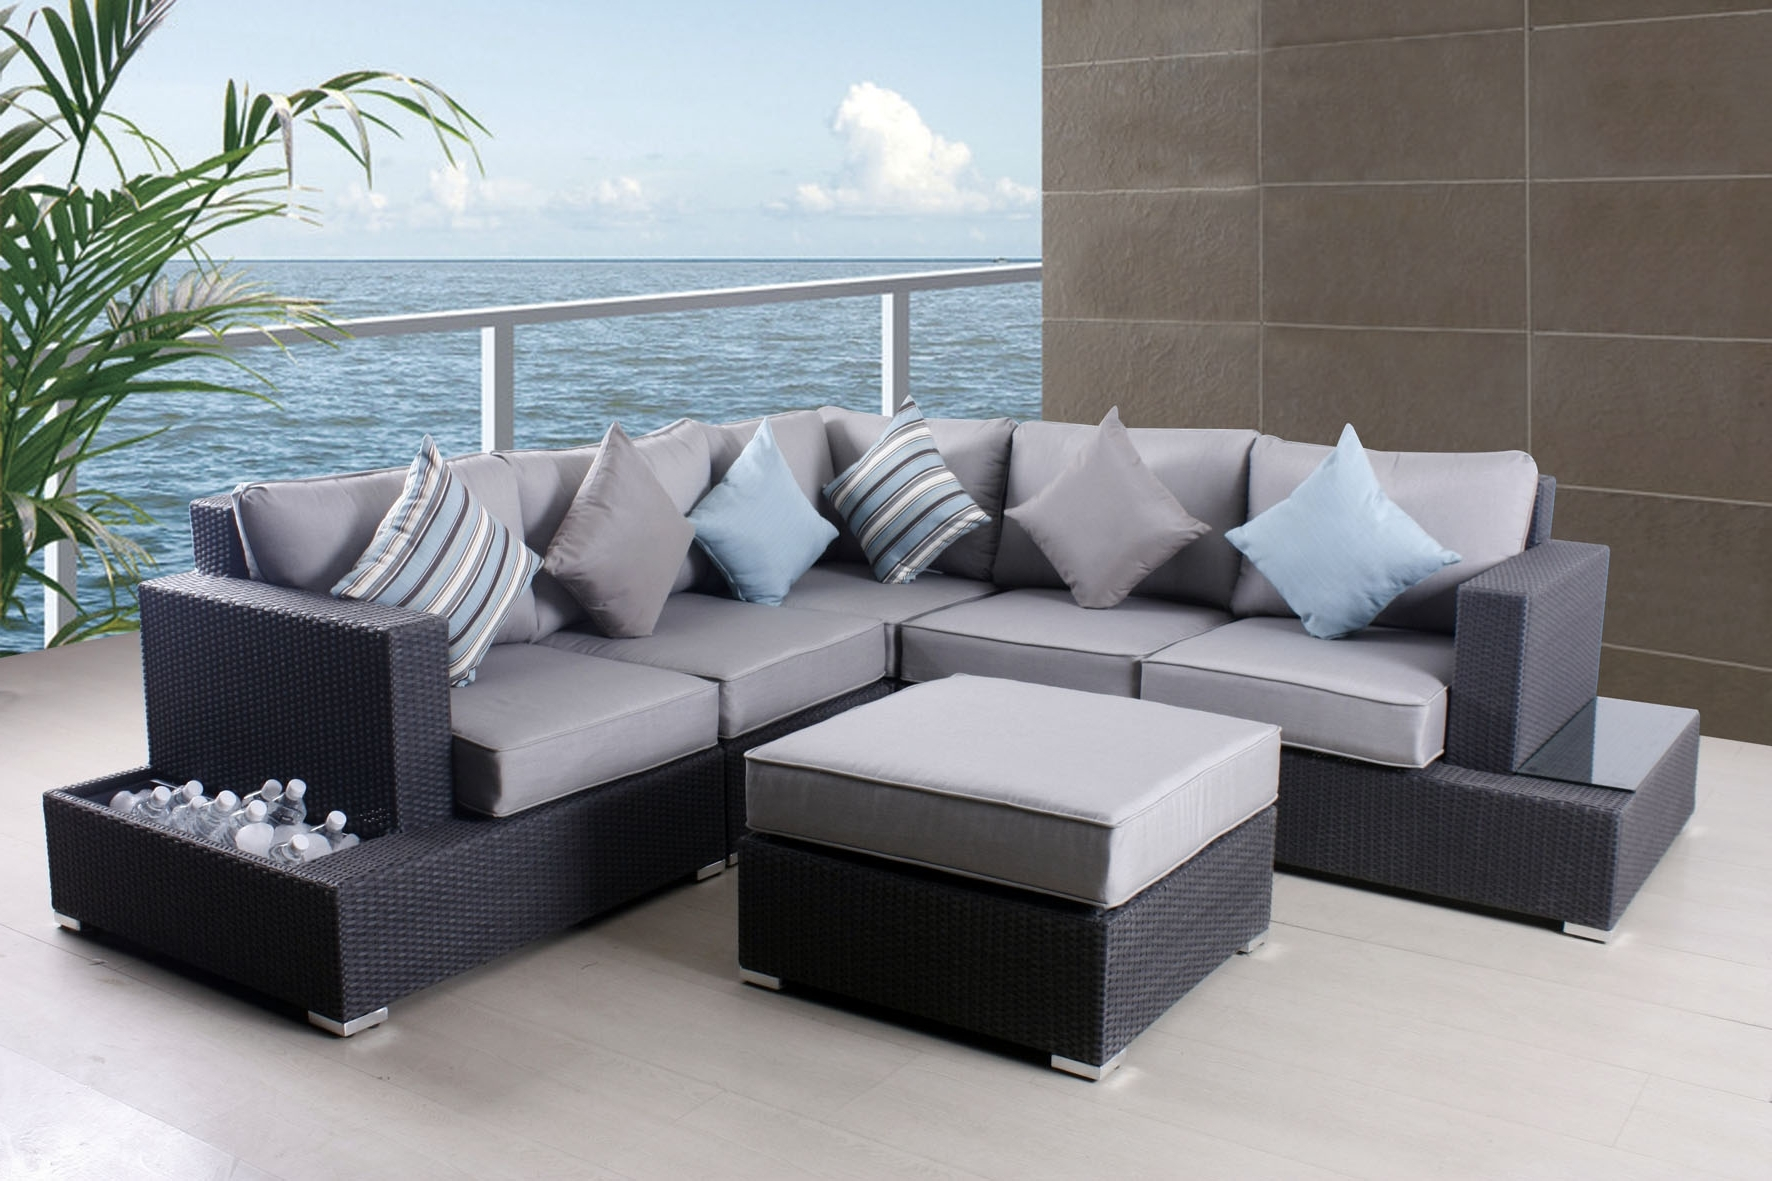 Grey Patio Conversation Sets Inside Widely Used Stylish Grey Patio Furniture Patio Grey Patio Furniture Sofa Set (View 5 of 20)